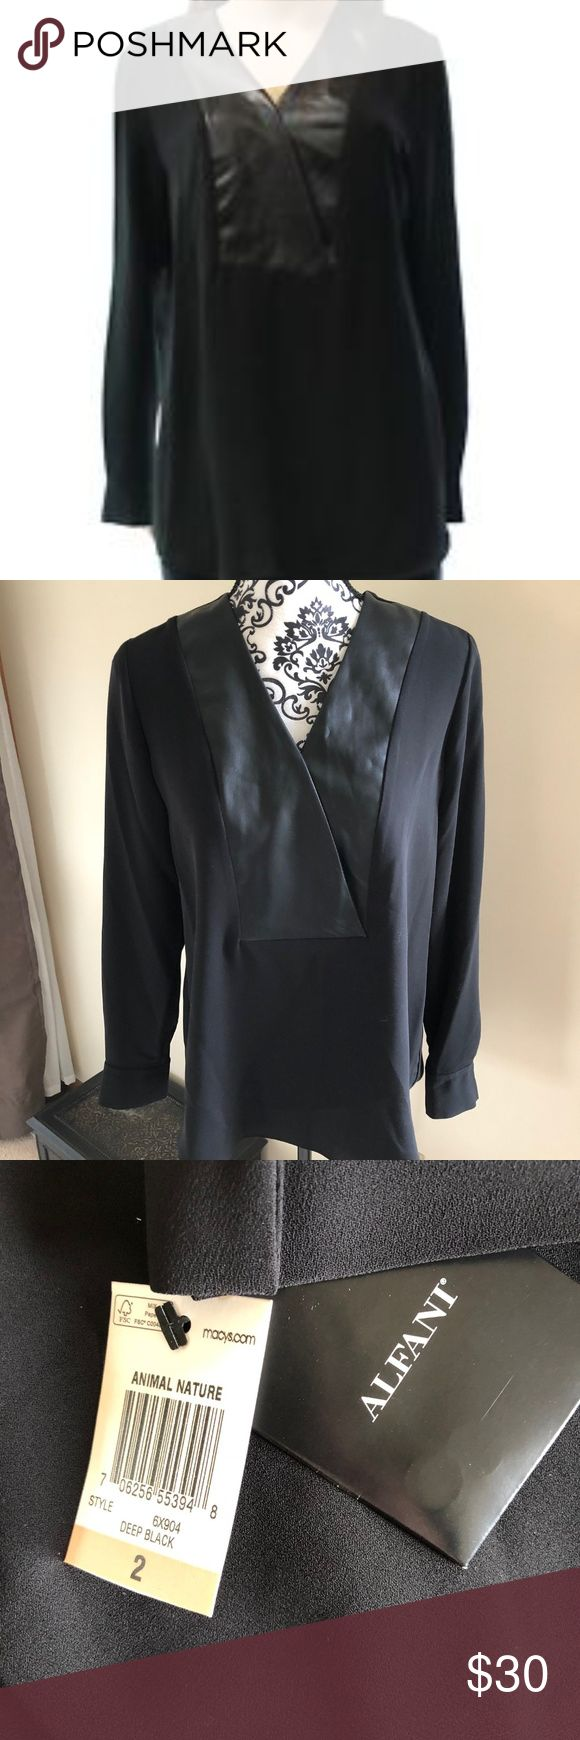 """NWT Alfani Black Blouse Faux Leather Size 2 085 Alfani Women's Black Blouse with Faux Leather Neckline Perfect for the workplace paired with a pencil skirt or worn casually as a tunic with skinny jeans. Size 2 Pit to Pit: 20"""" Wide Length: 27"""" Long Excellent condition, new with tags! Alfani Tops Blouses"""